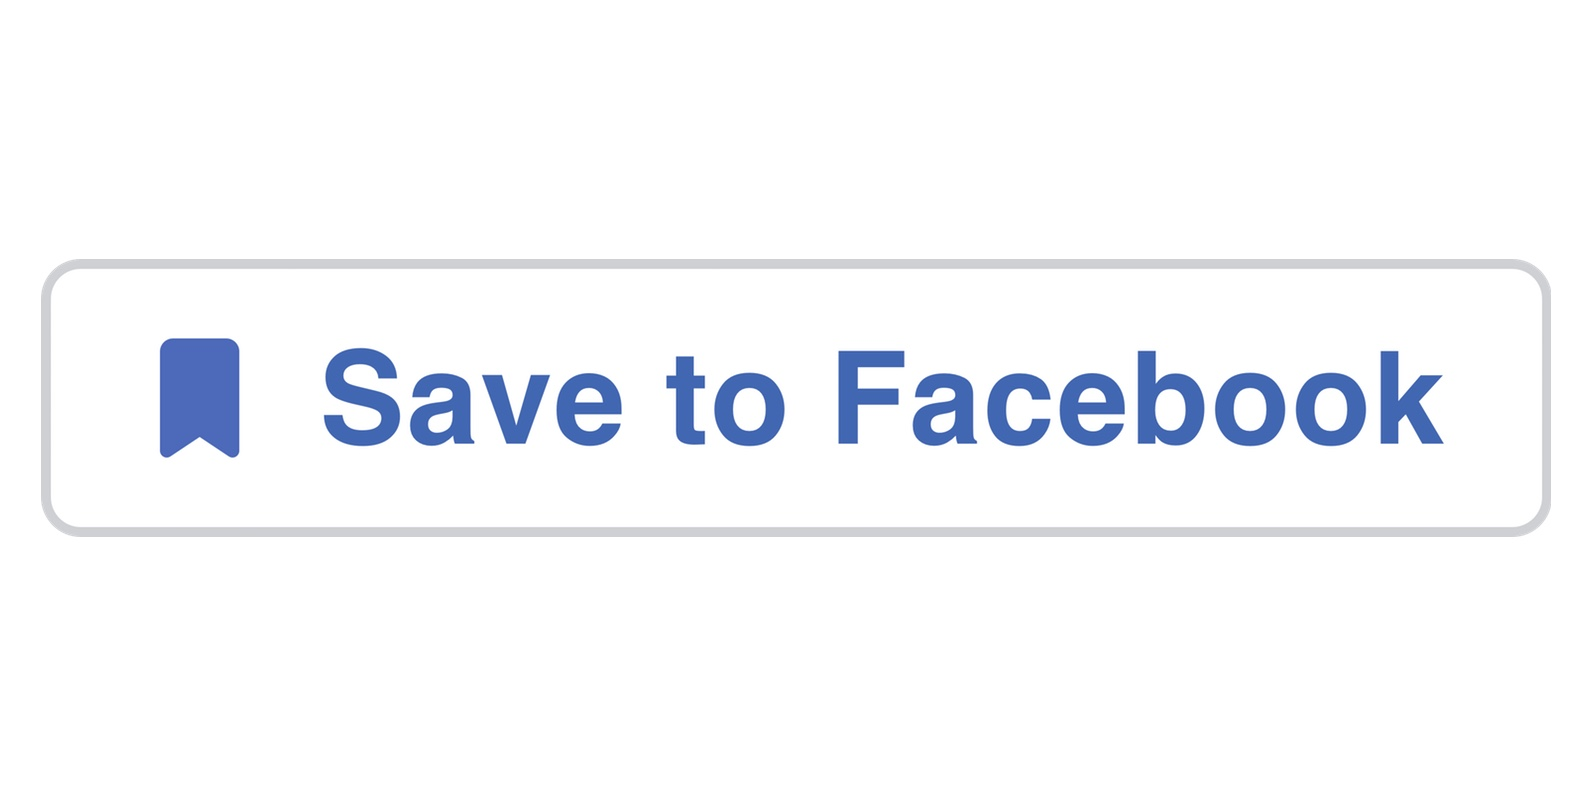 How to pictures facebook from save